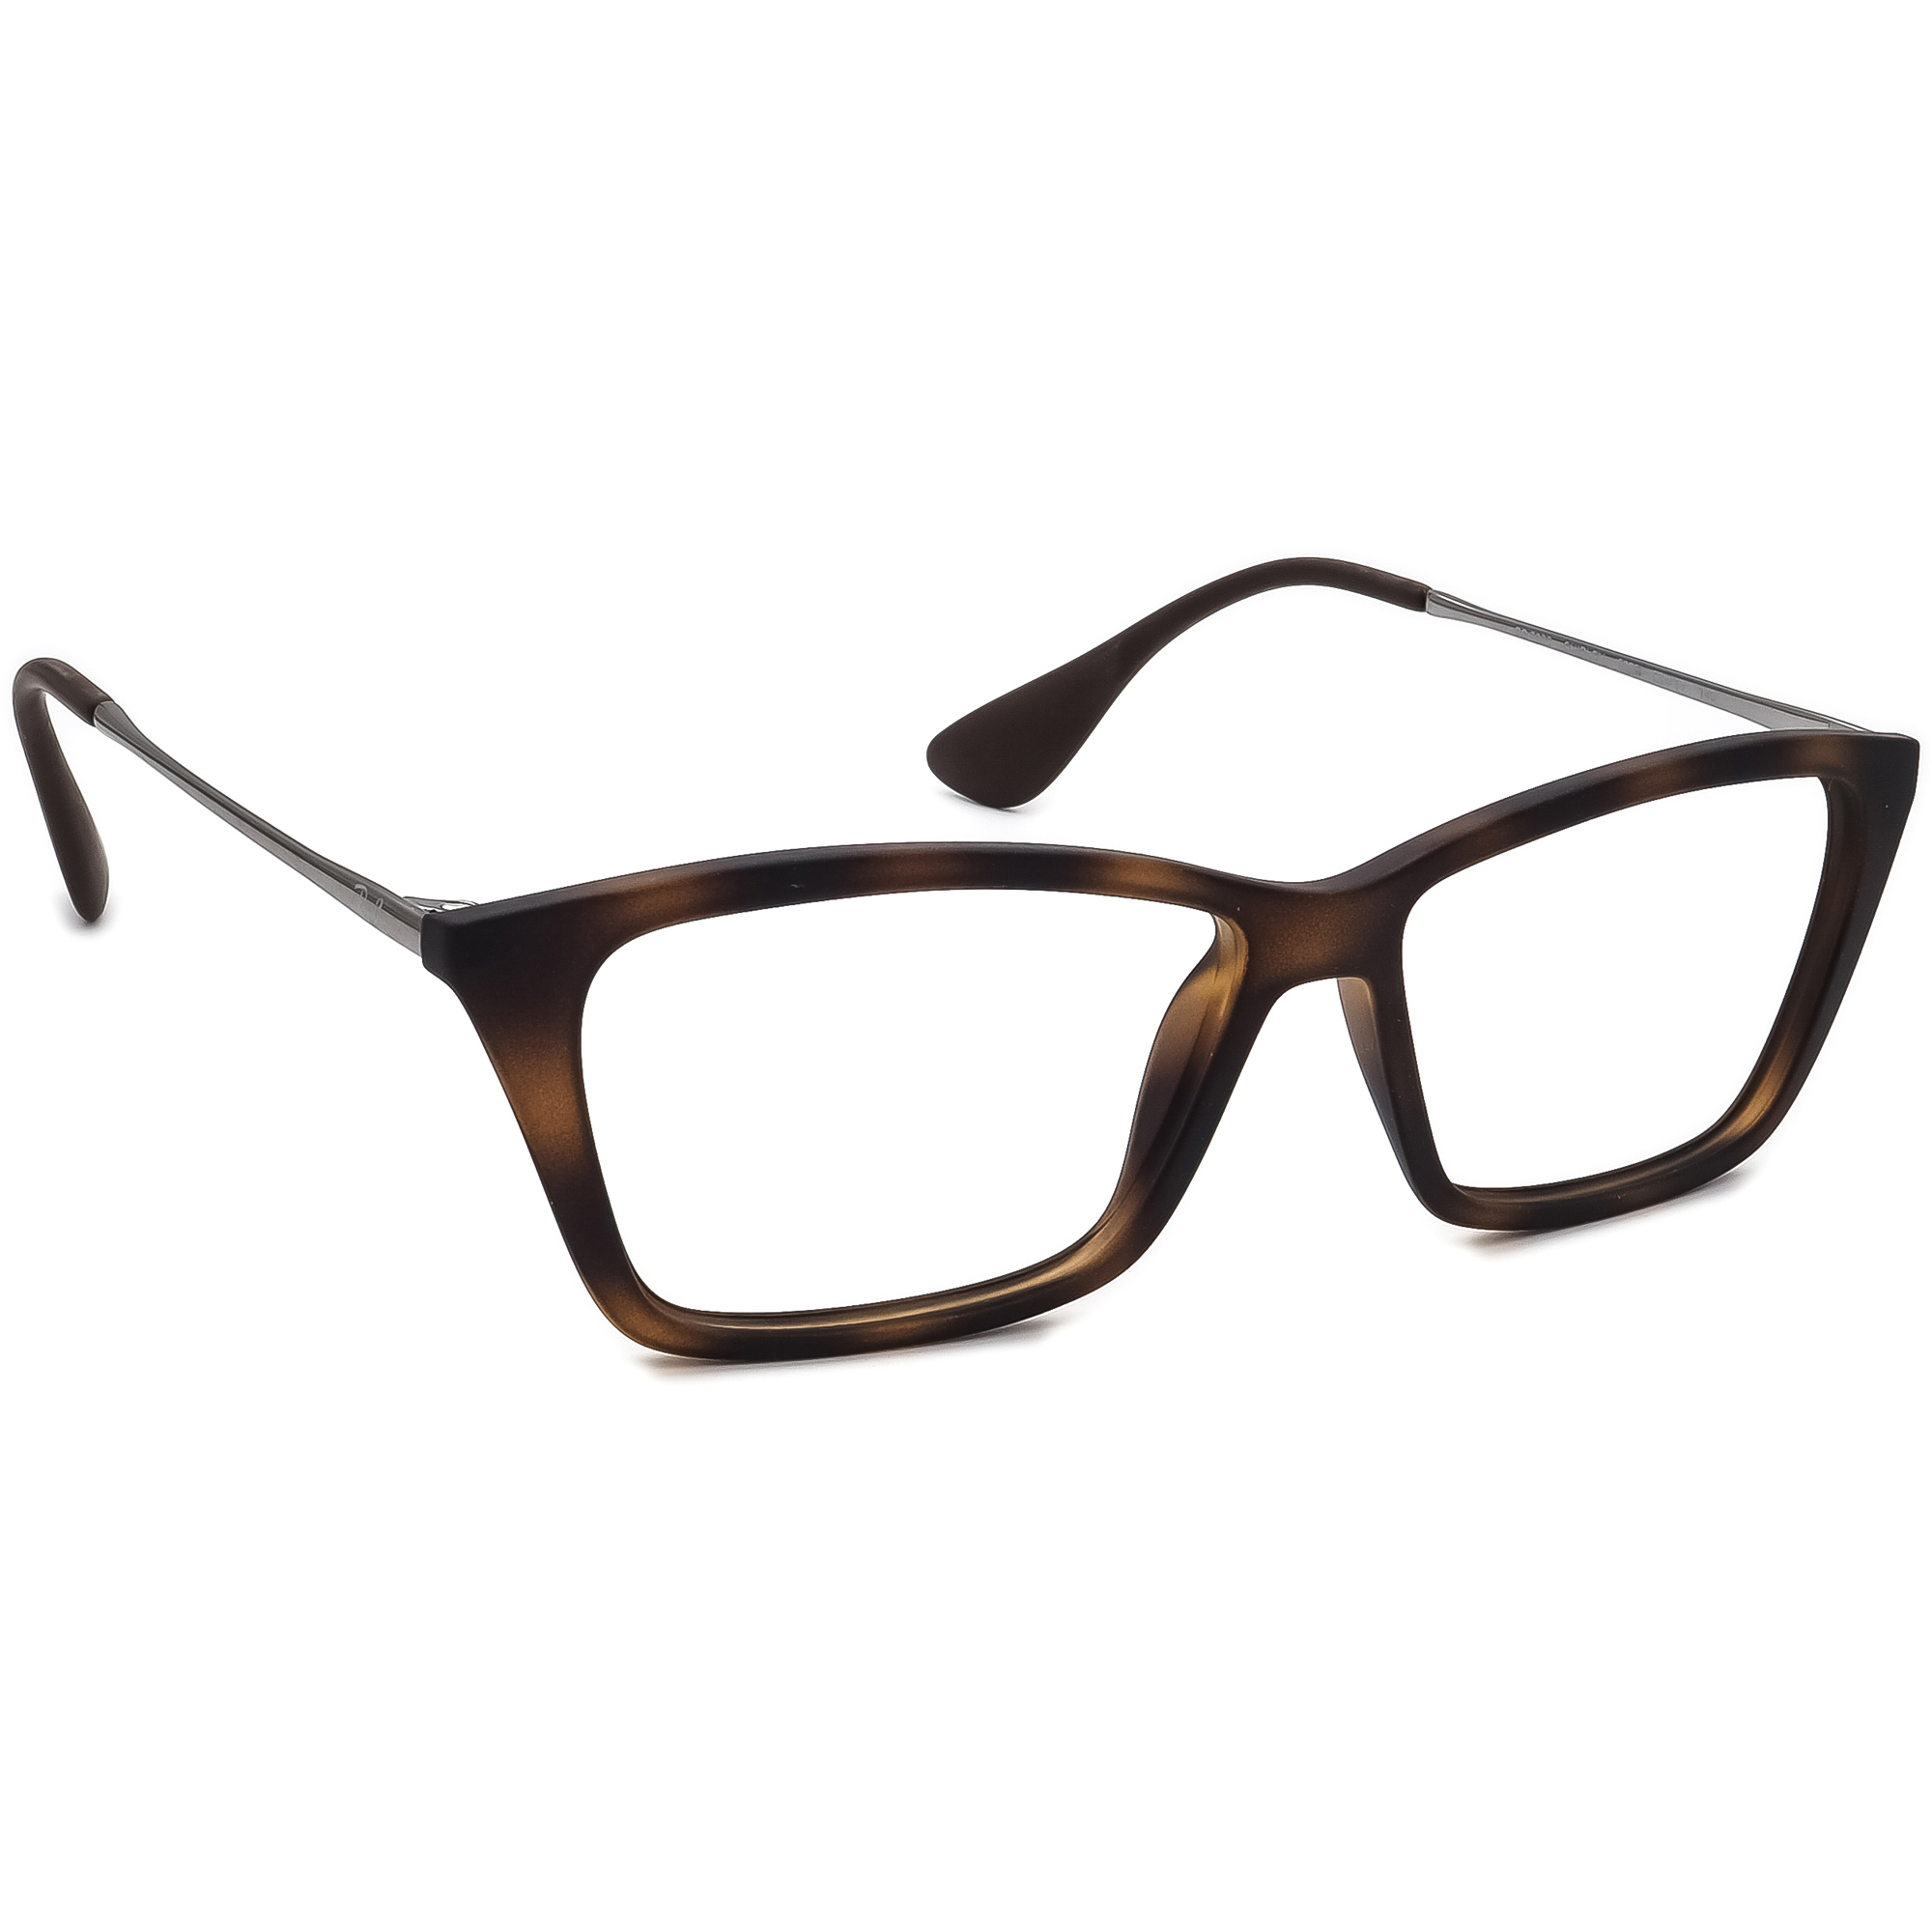 Ray Ban Eyeglasses RB 7022 Shirley 5365 Matte Tortoise Brown Frame 52[]14 140